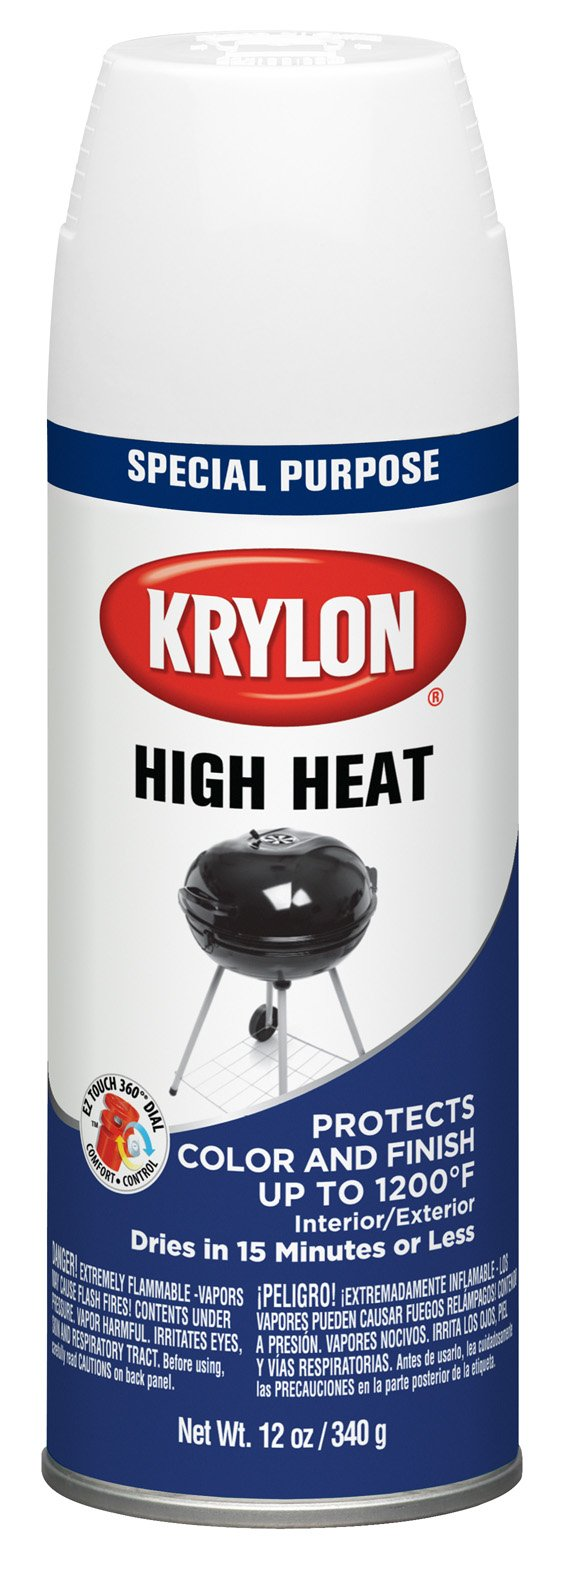 Krylon 1505-6 PK White High Heat and Radiator Paint - 12 oz. Aerosol, (Case of 6)